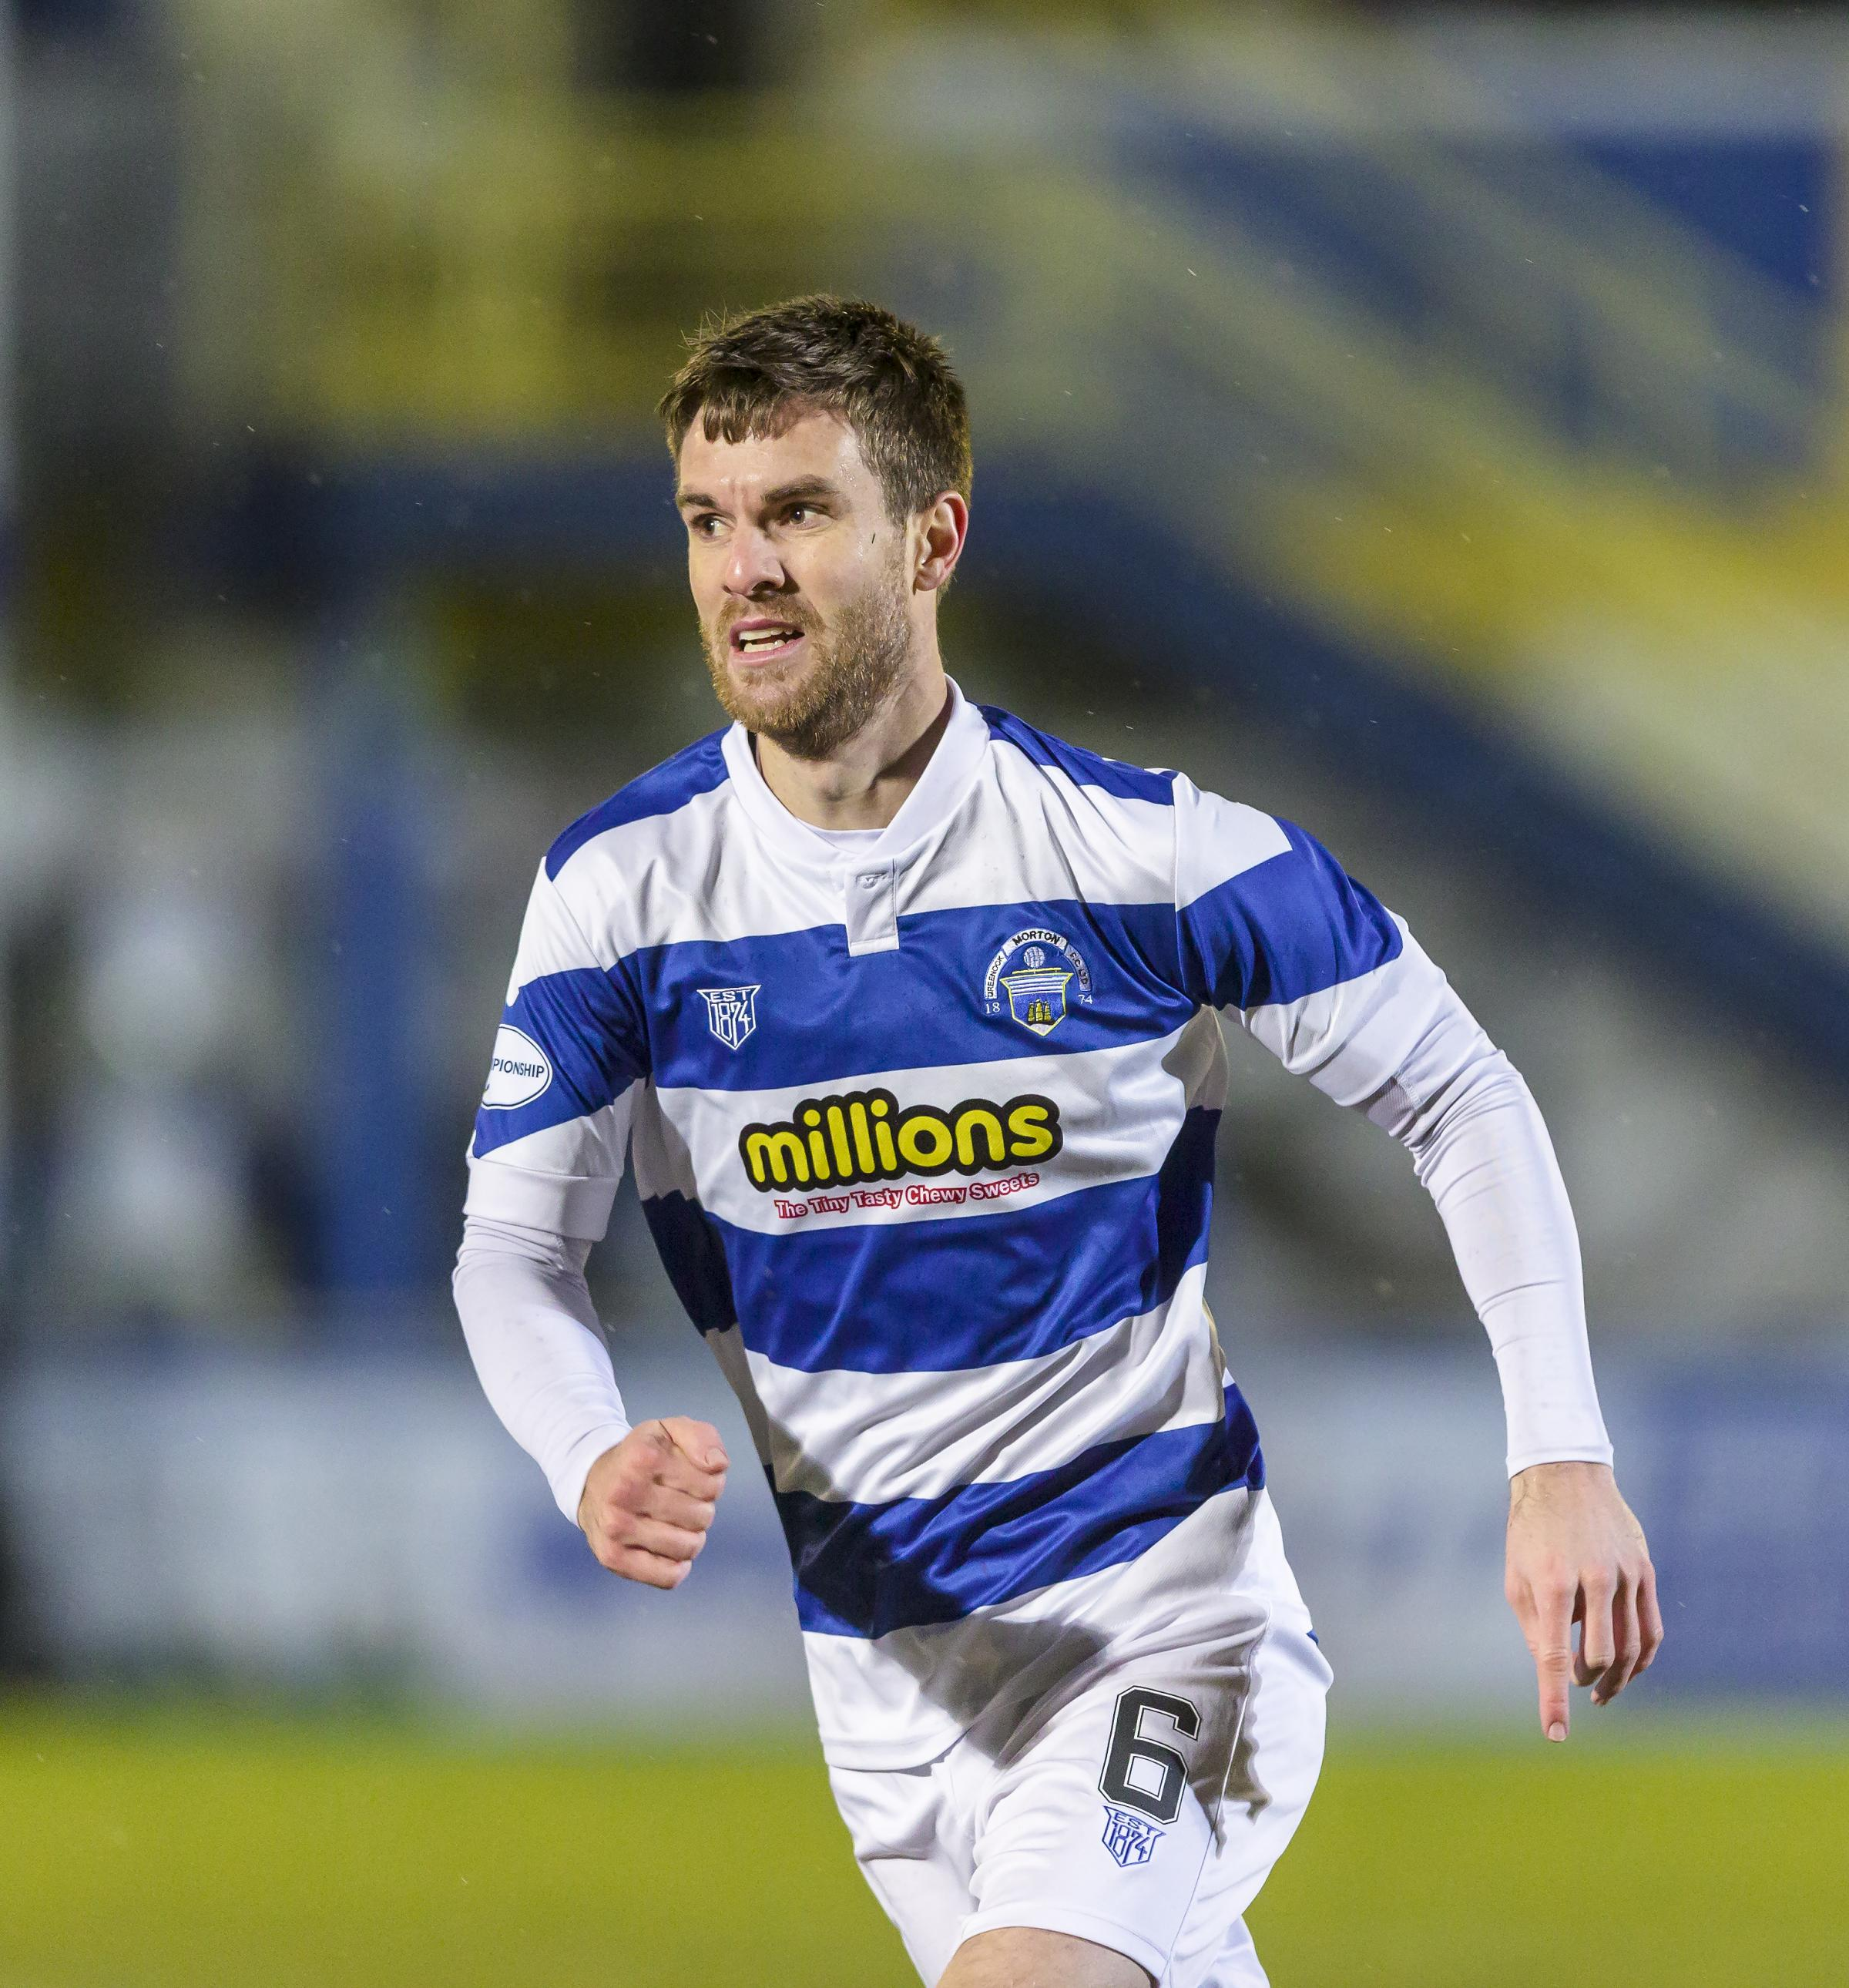 Jacobs confident winning at Inverness can turn Morton's season around